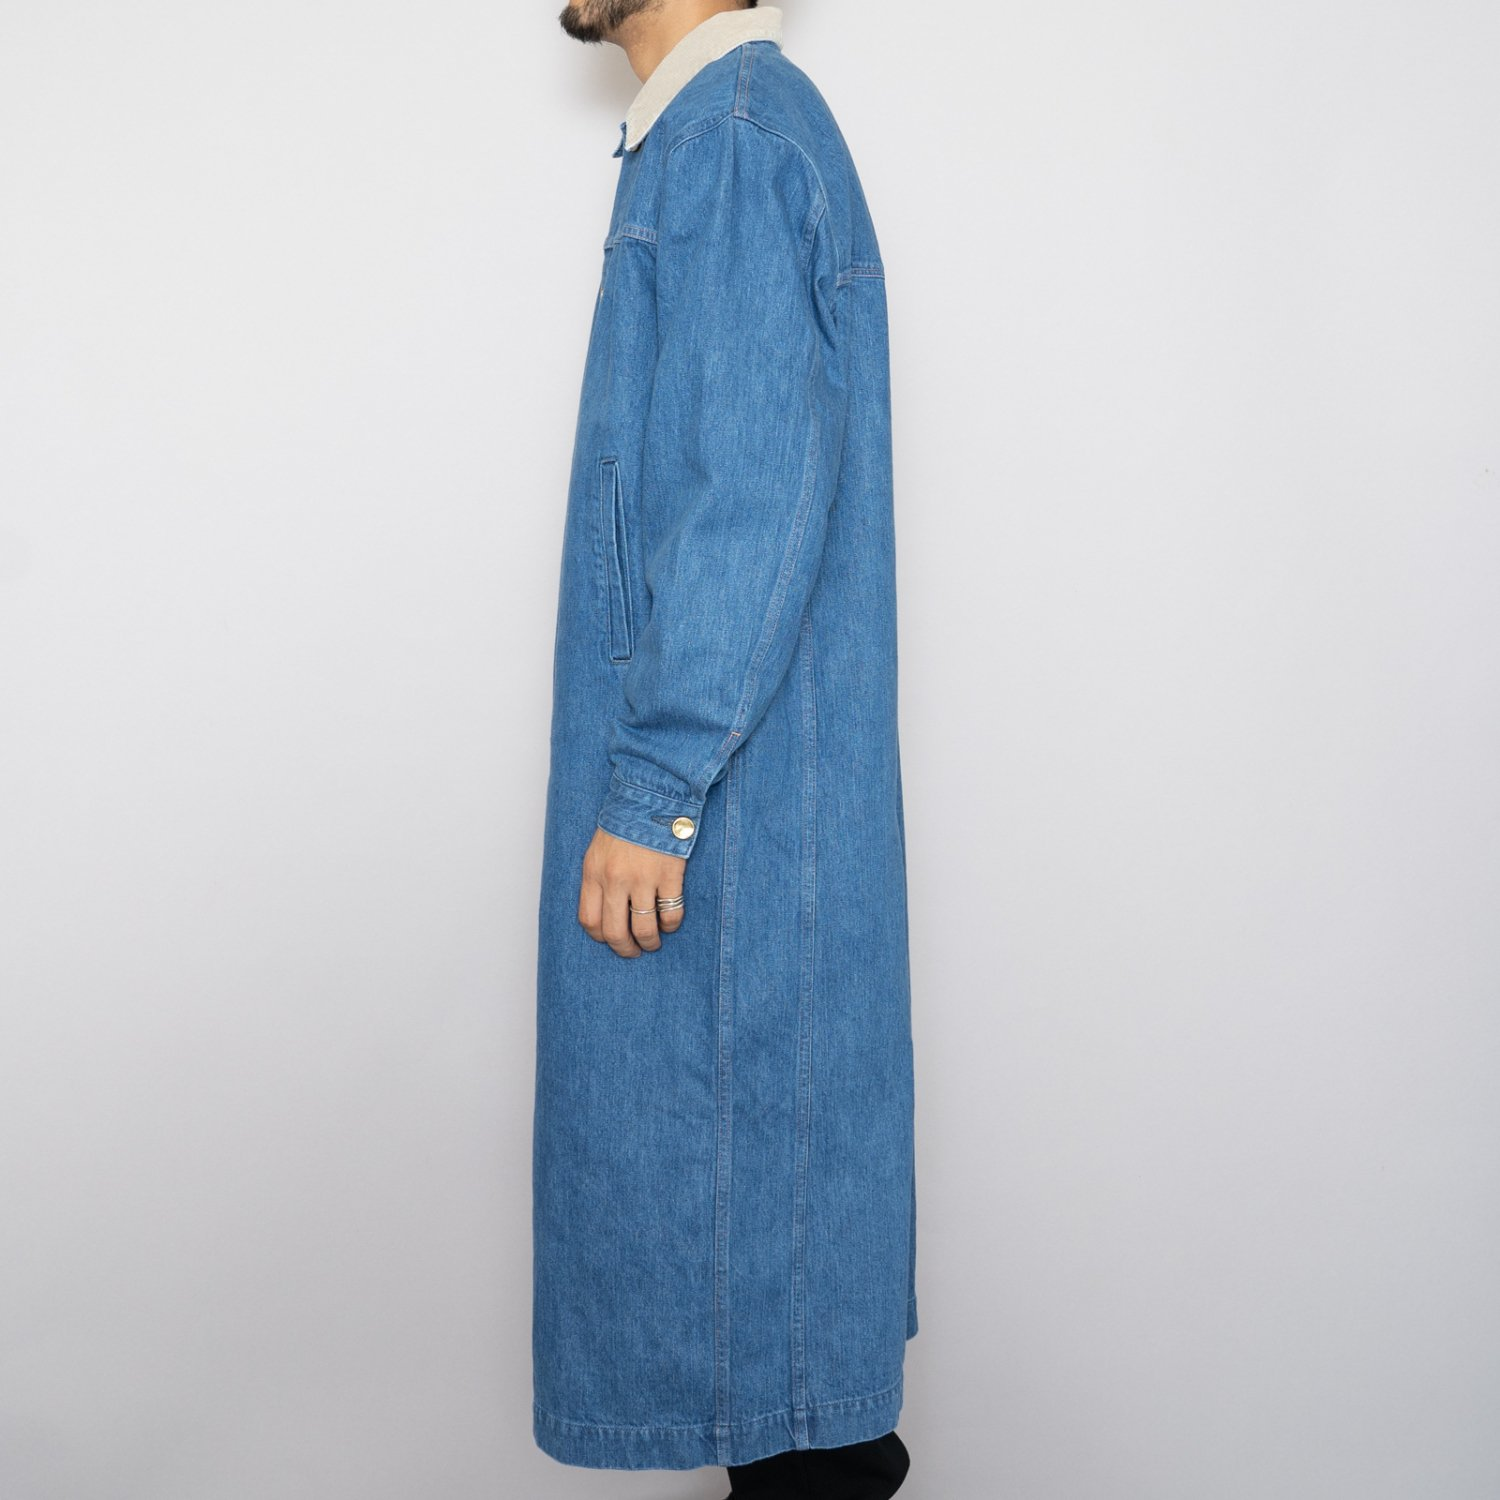 UNUSED * US1885 13oz Denim Coat * Indigo